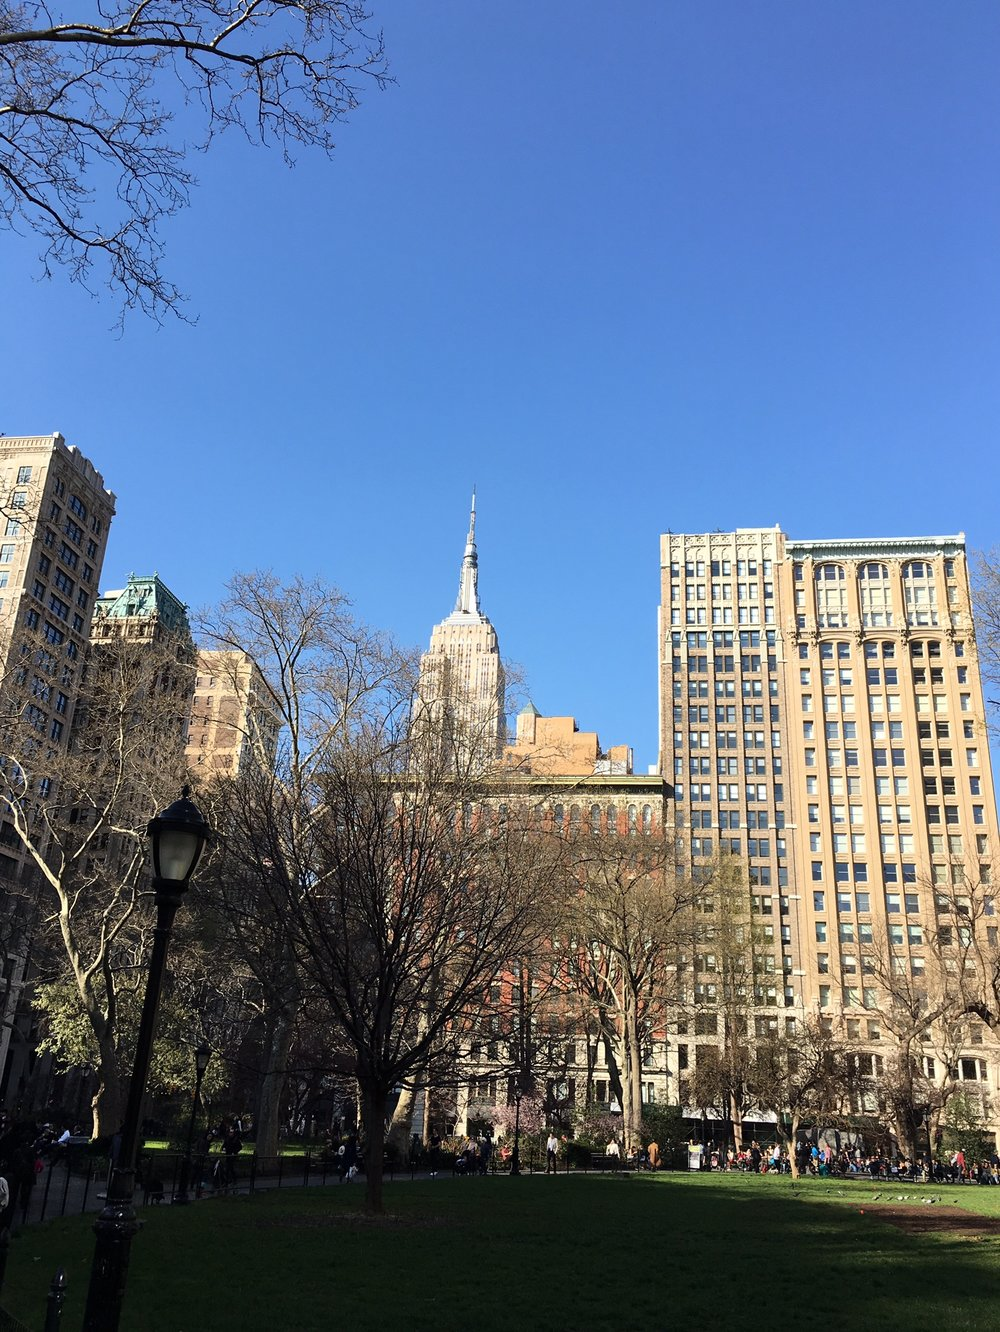 Listen to free live music at Madison Square Park -